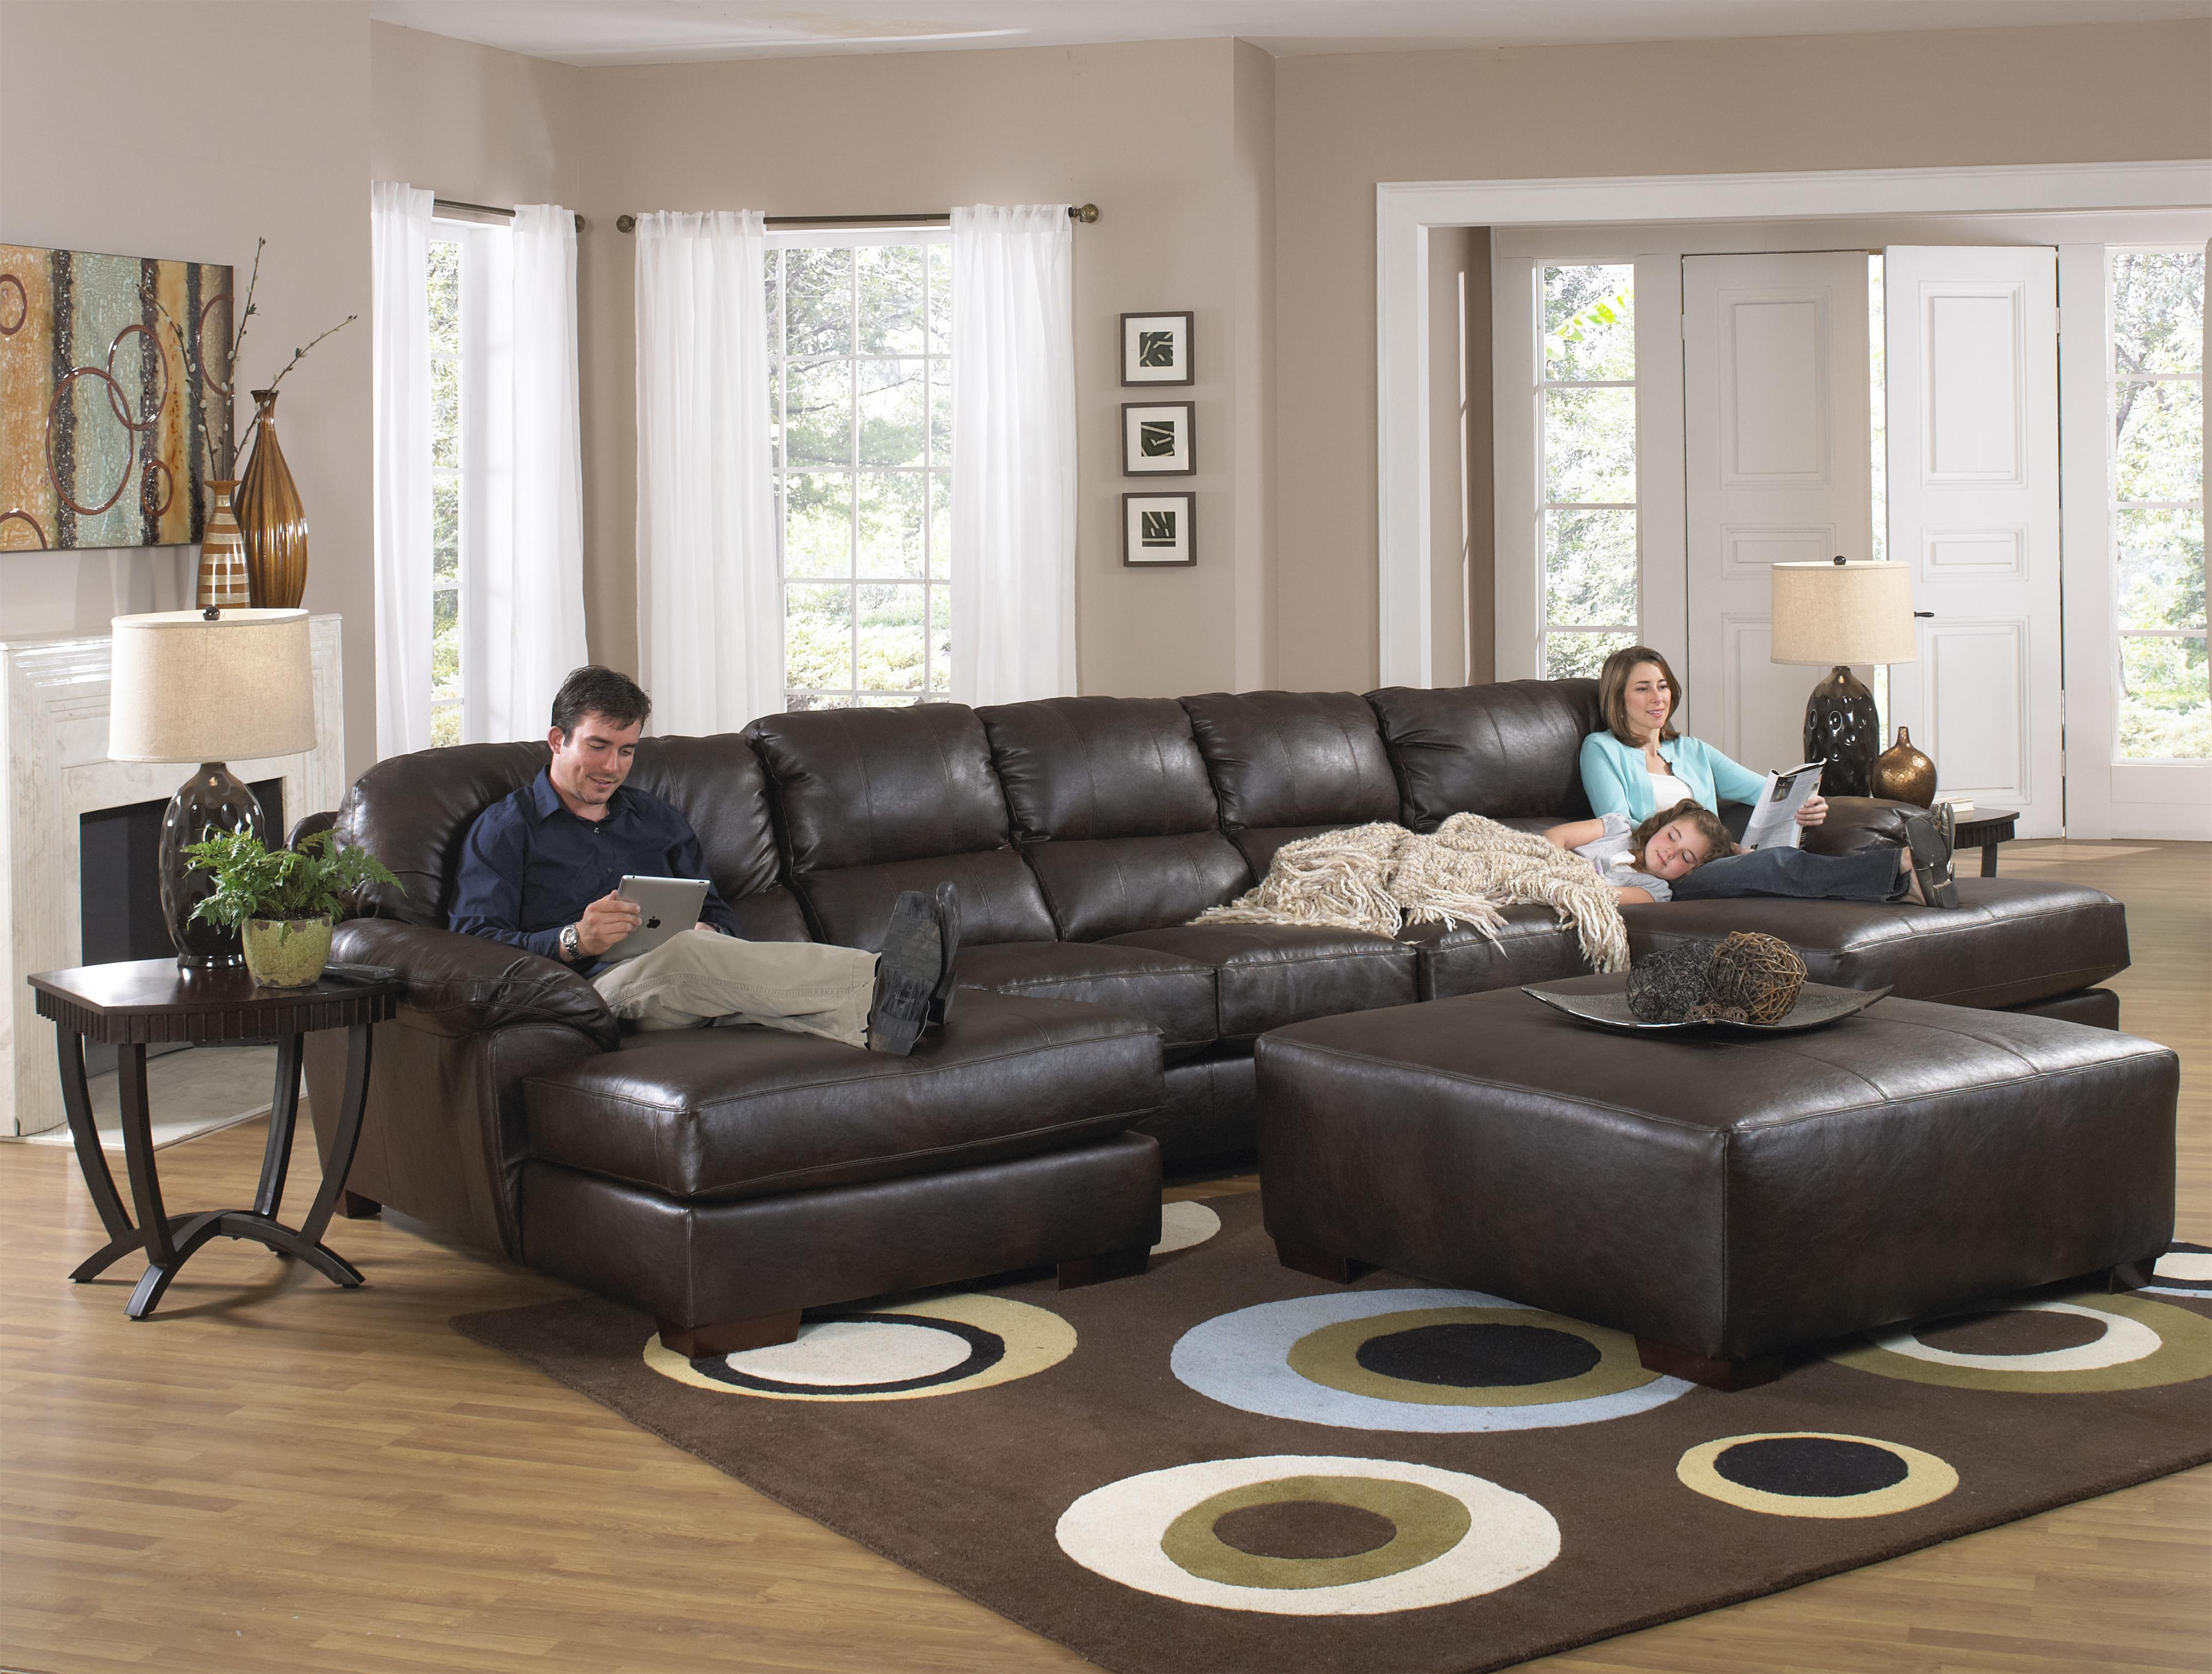 Widely Used Jackson 6 Piece Power Reclining Sectionals With Sleeper Within Jackson Furniture Lawson Two Chaise Sectional Sofa With Five Total (View 18 of 20)